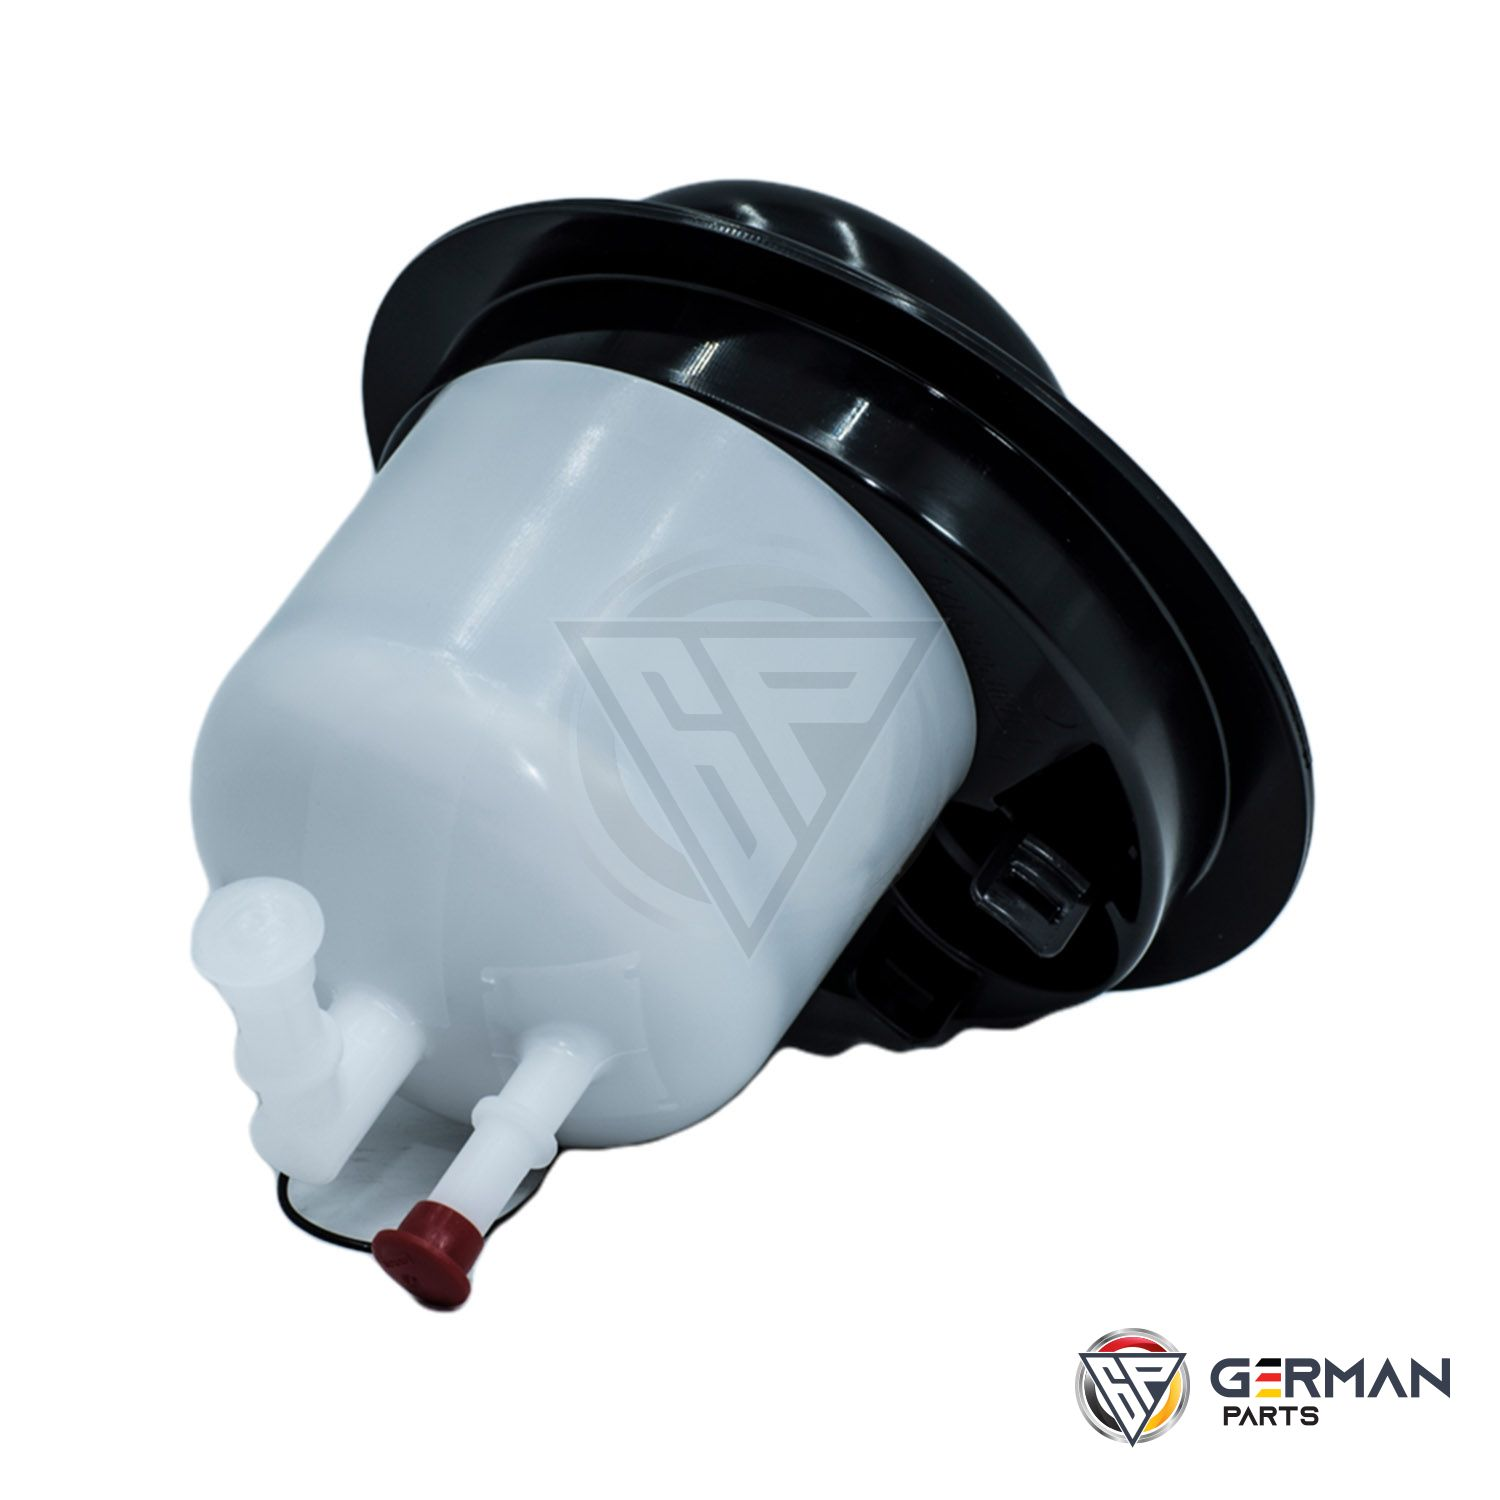 Buy Genuine Porsche Fuel Filter 95862042100 - German Parts